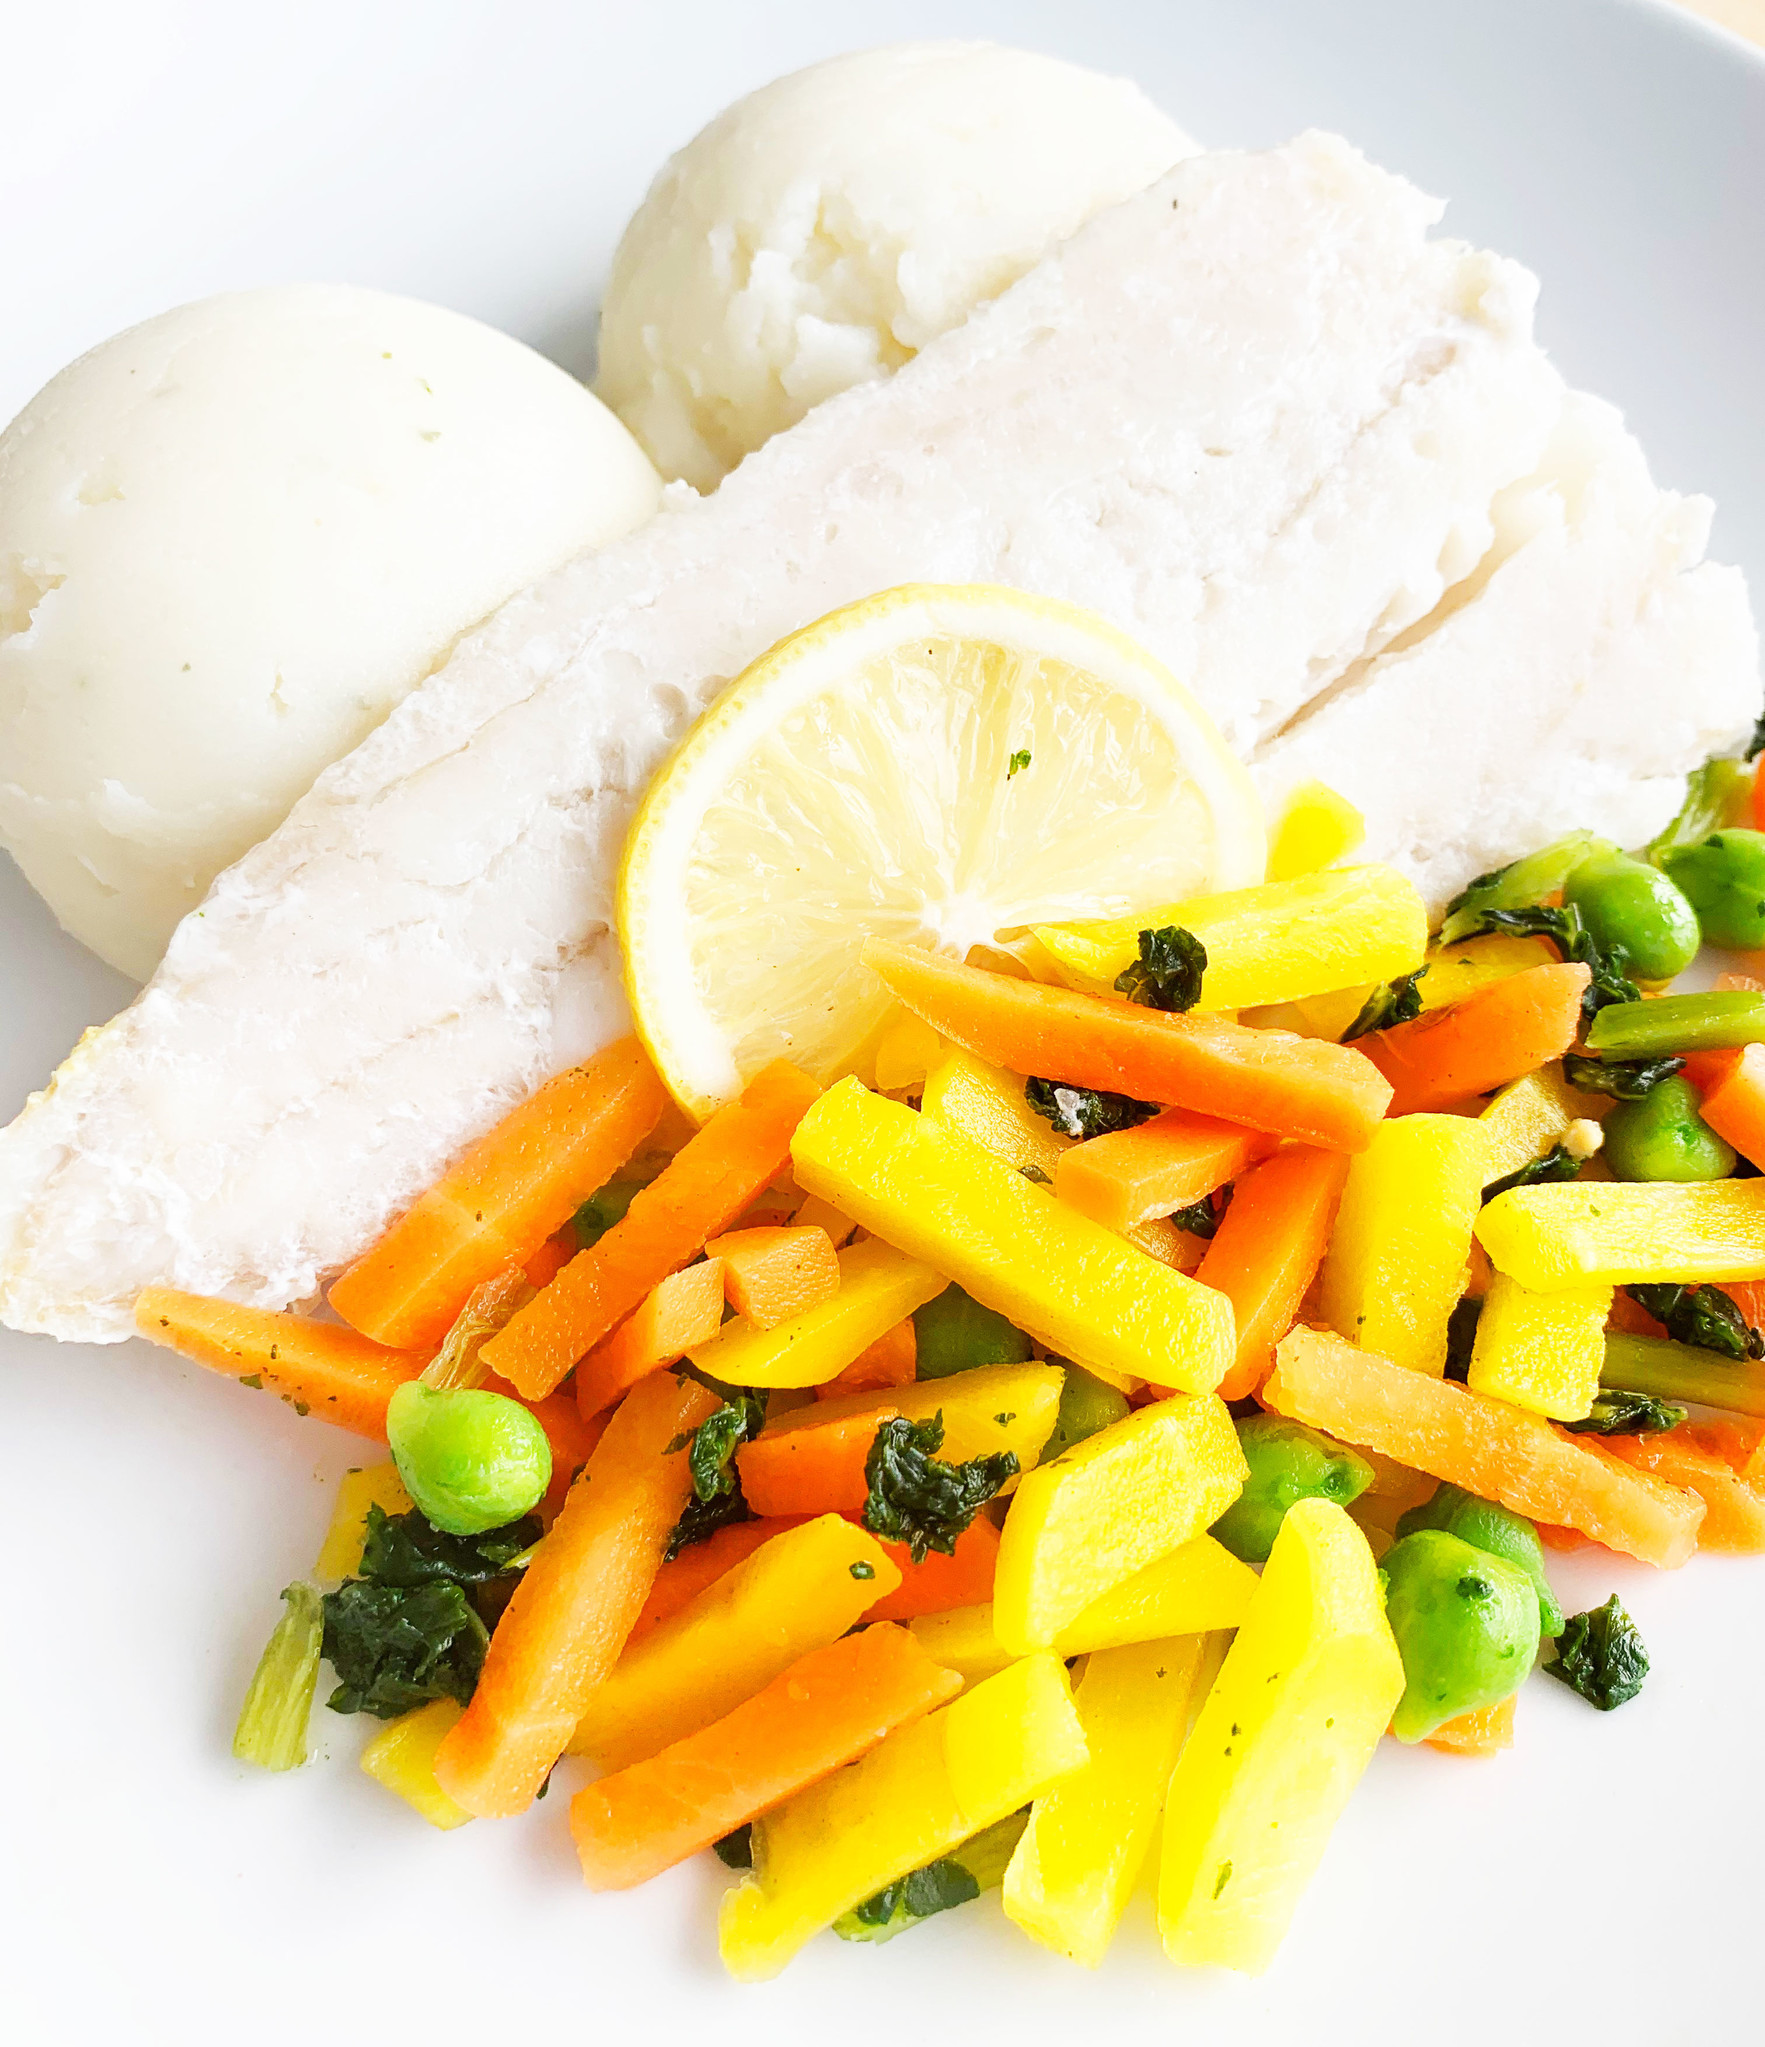 Cod with lemon, mixed vegetable and mashed potatoes